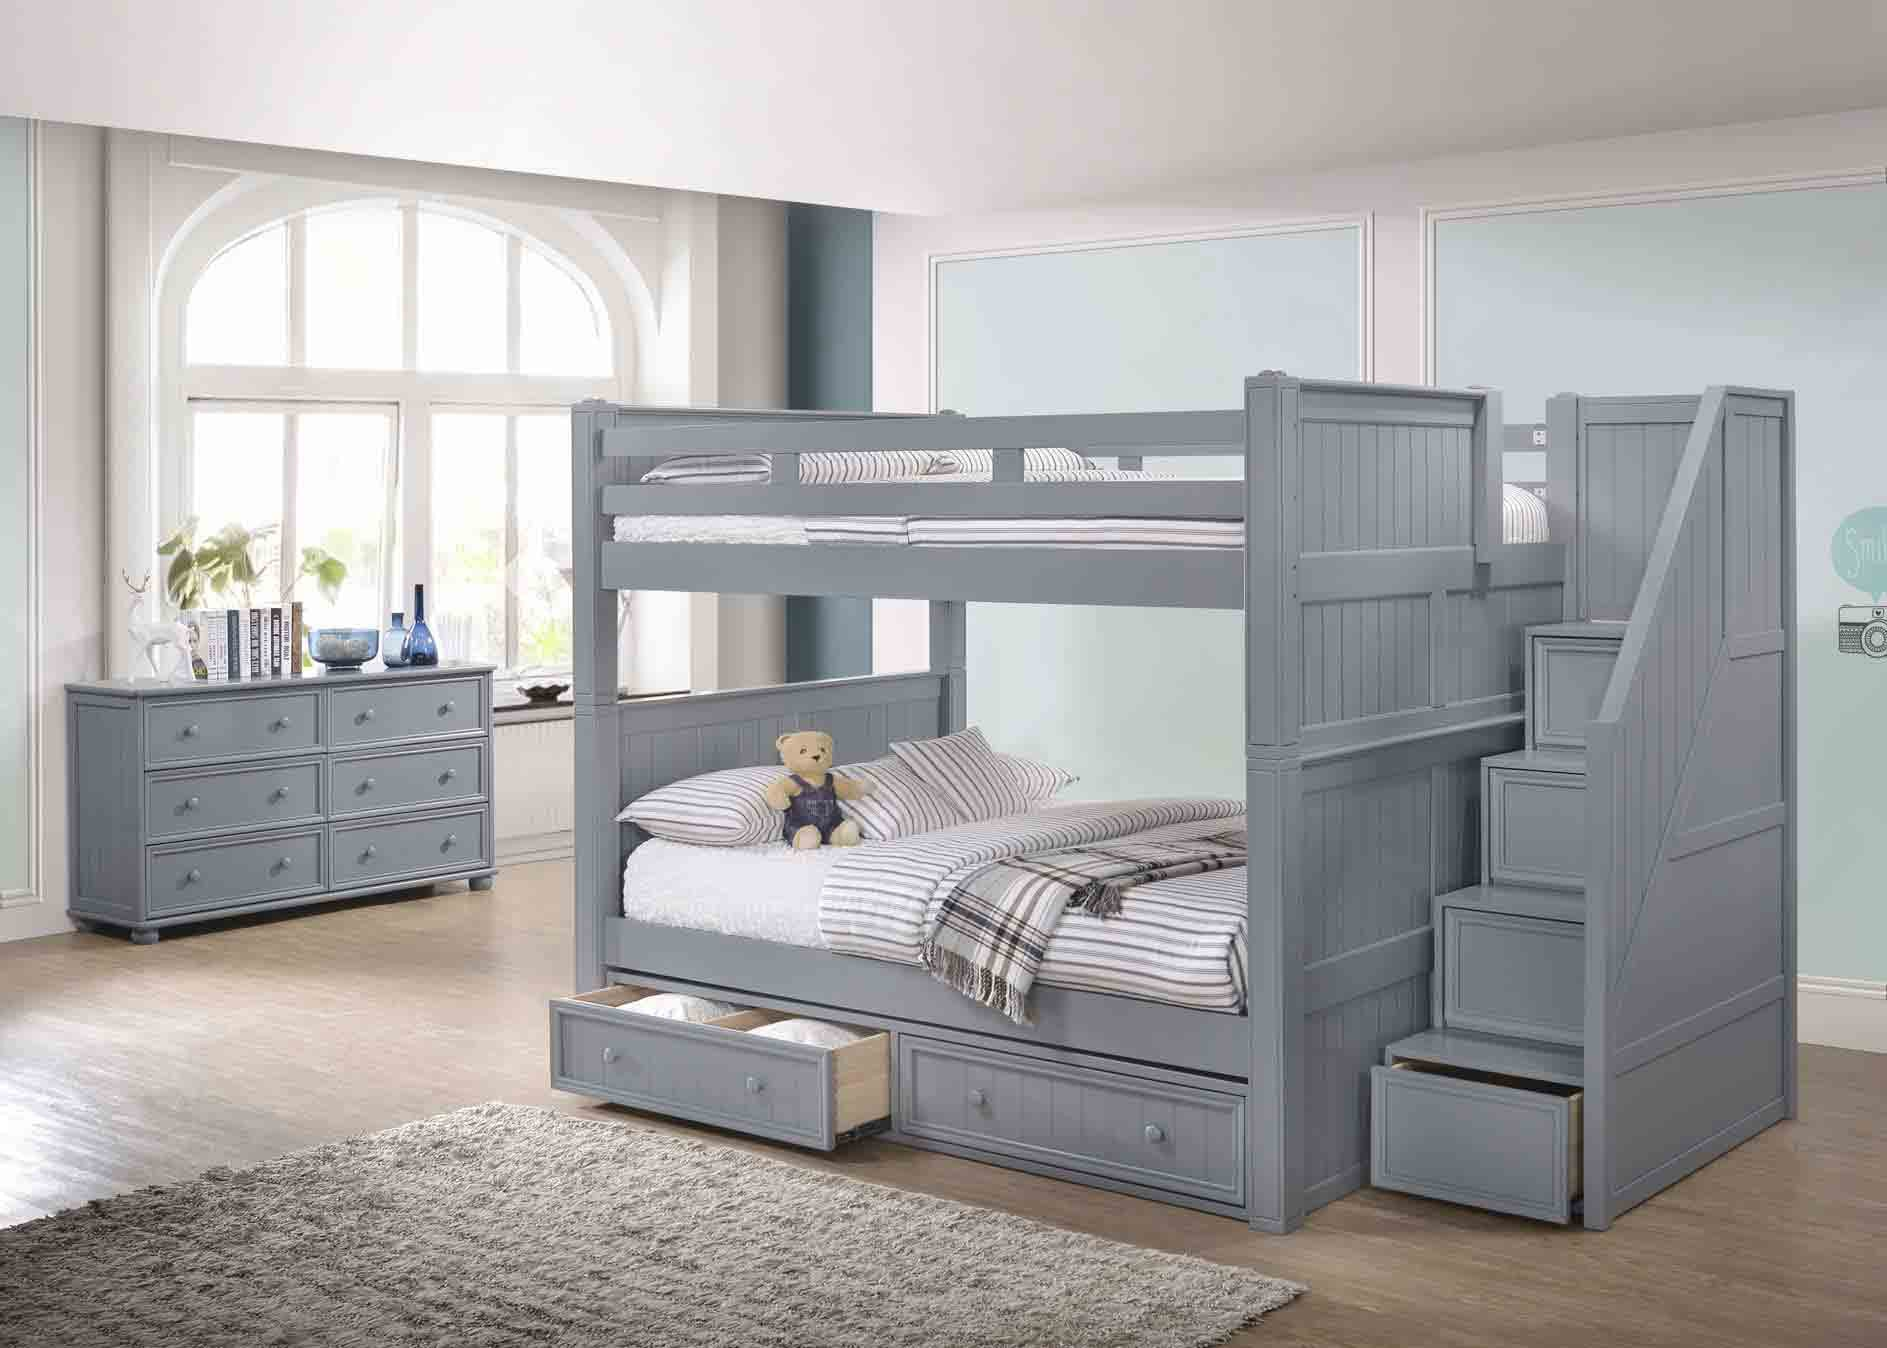 J A Y Furniture Full Full Bunk Beds W Step Drawers 0361 C Simply